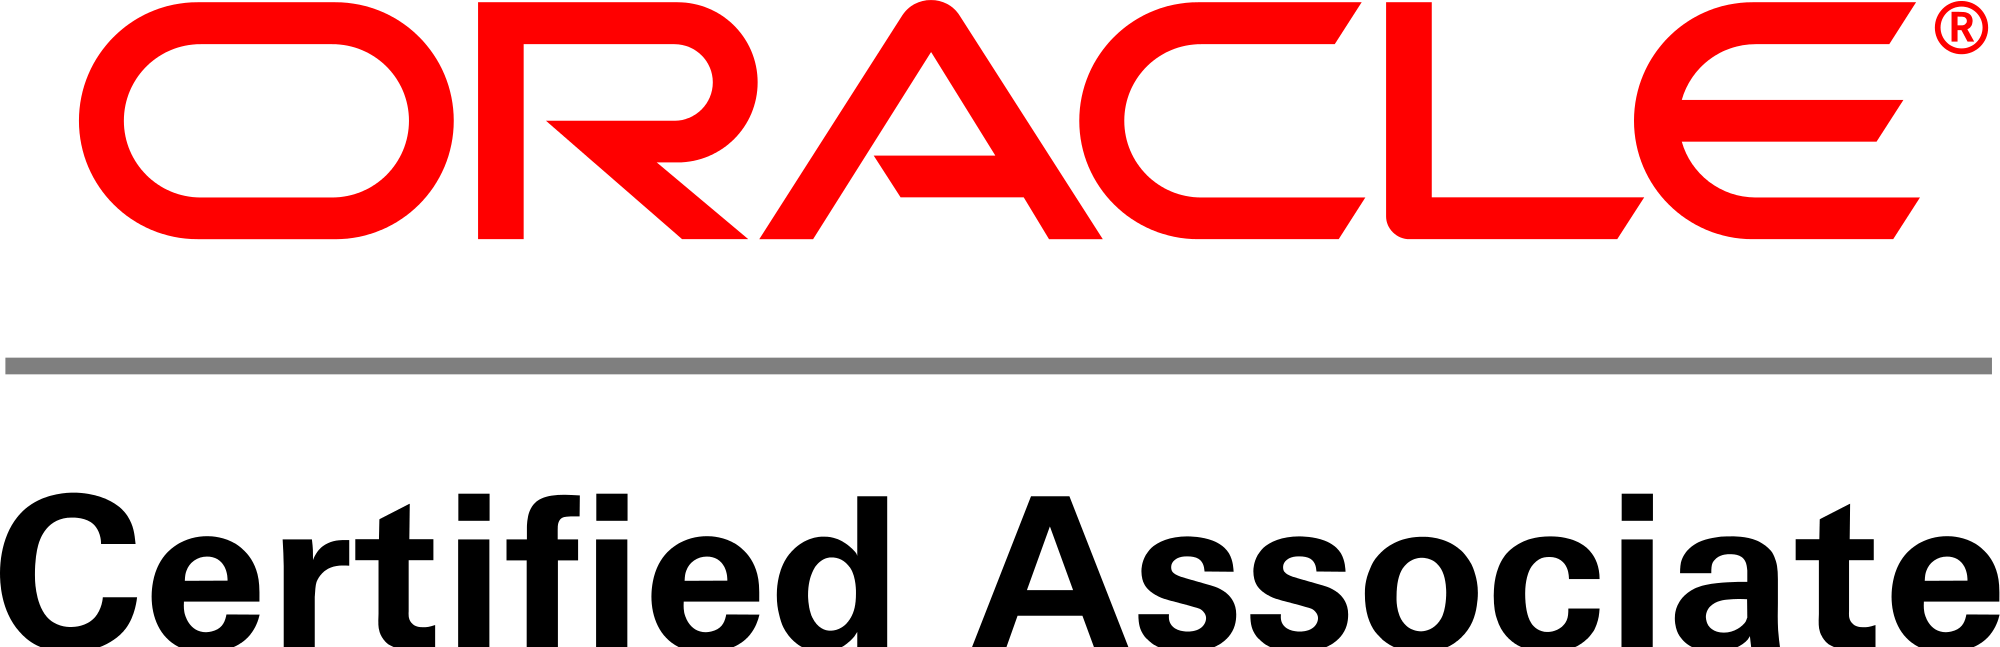 Oracle Logo - File:Oracle Certified Associate Logo.svg - Wikimedia Commons